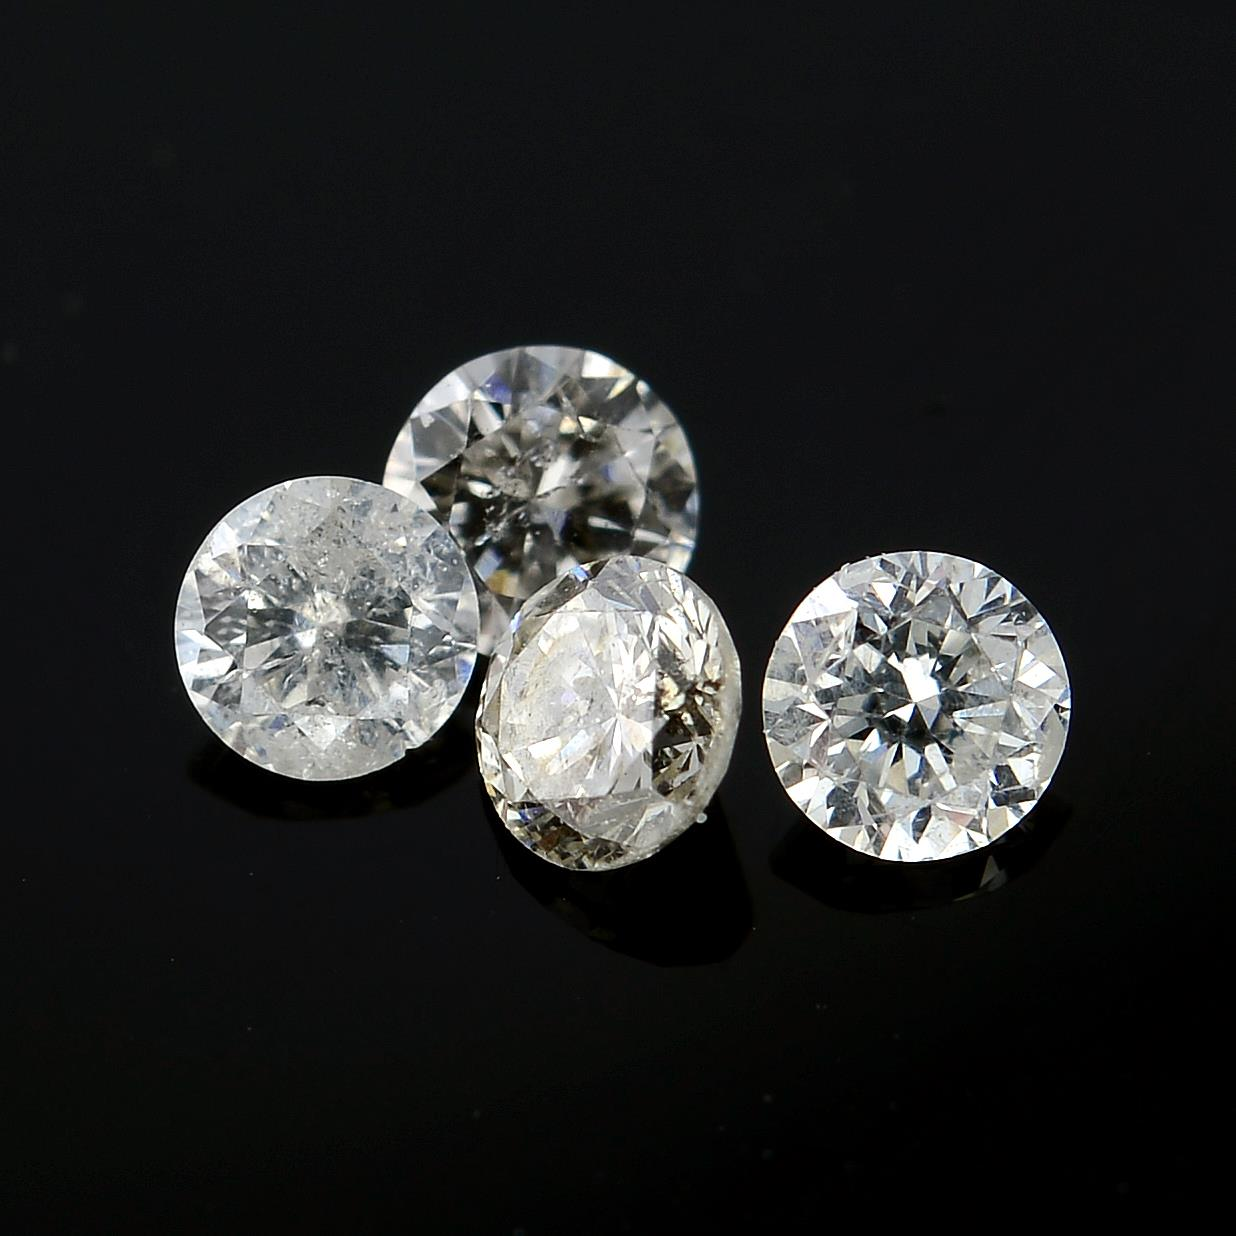 A selection of brilliant-cut diamonds, weighing 0.75ct total.